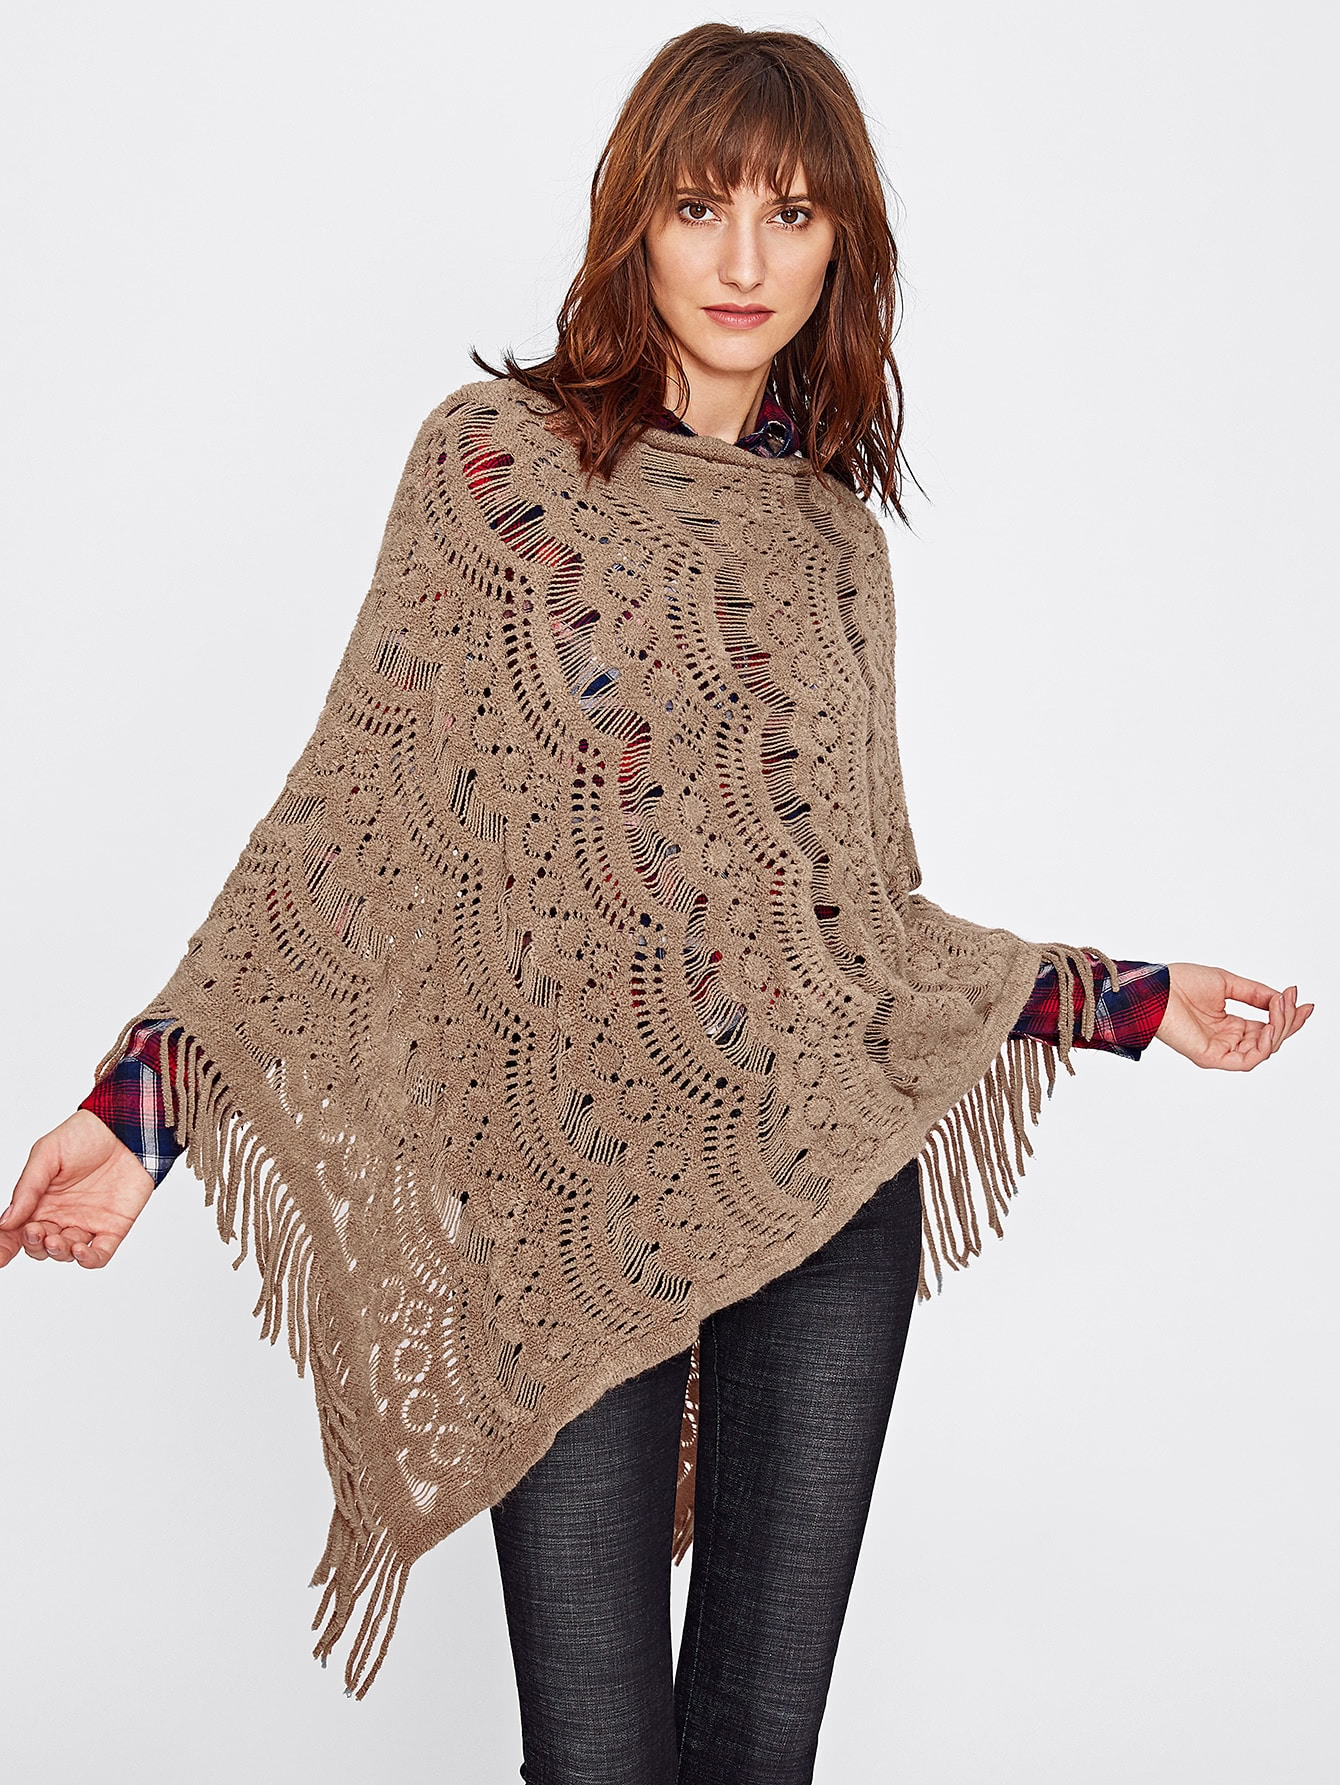 Hollow Out Fringe Poncho Sweater -SheIn(Sheinside)